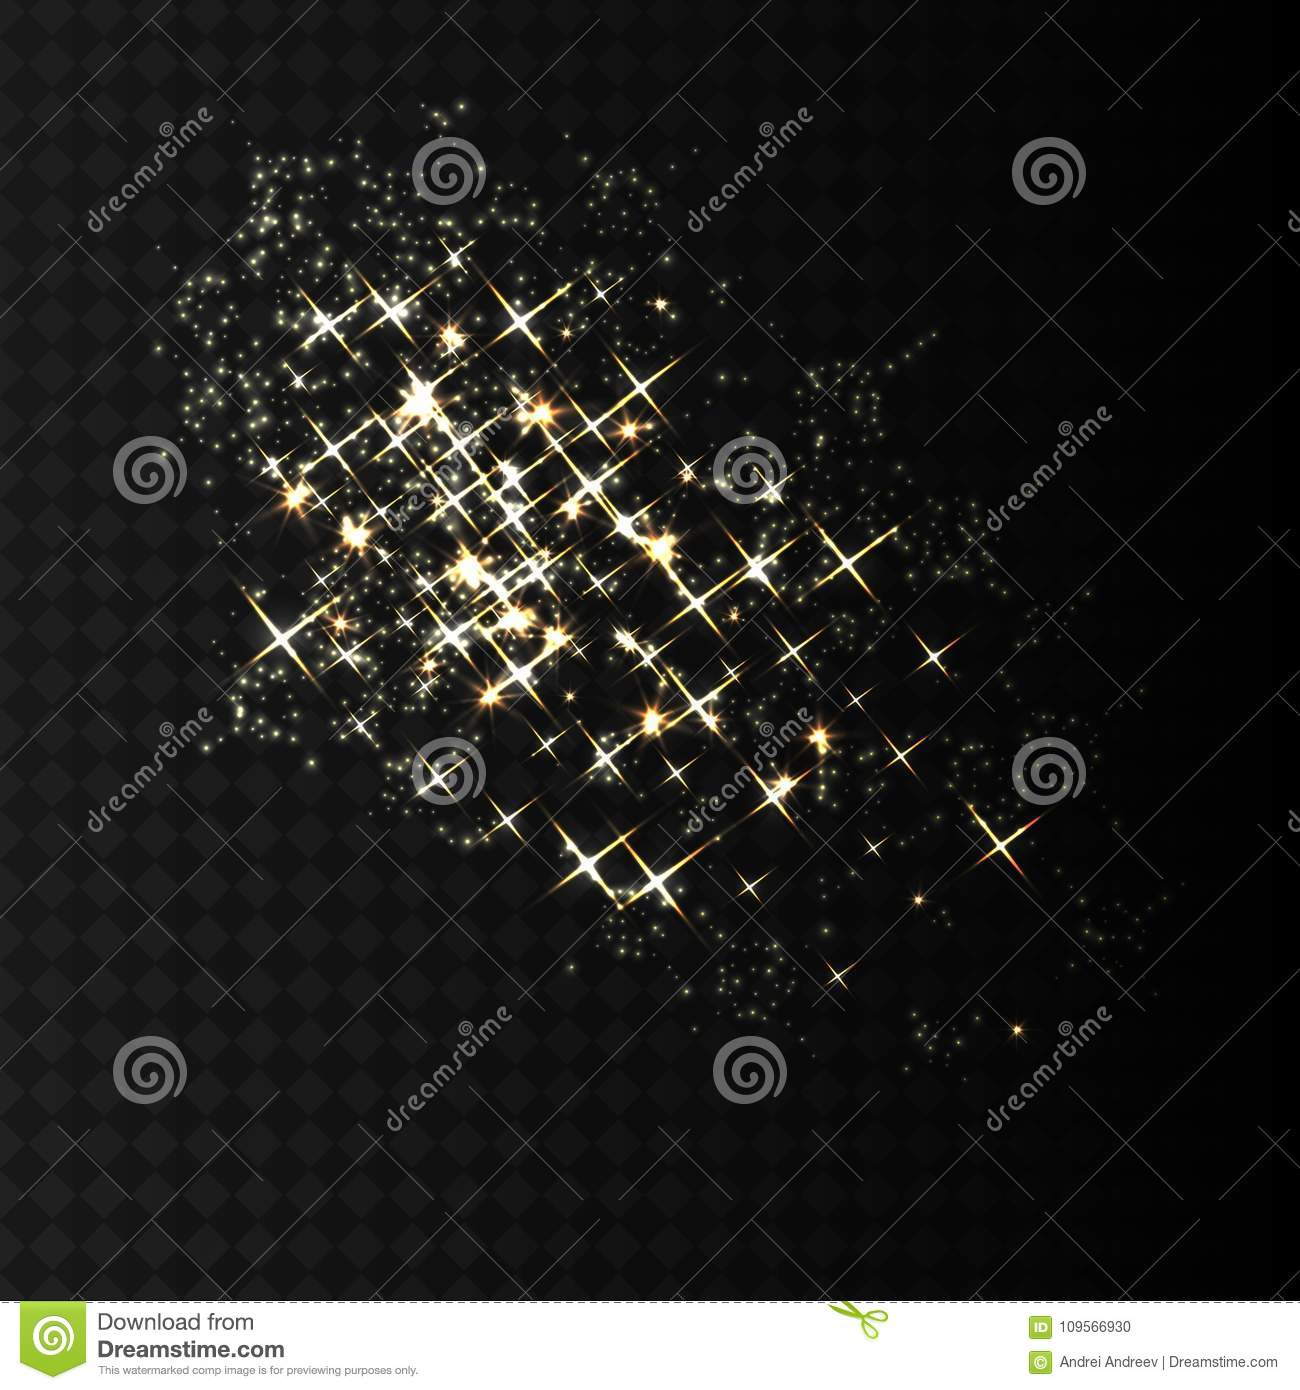 Gold sparkles and glittering powder spray. Sparkling glitter particles explosion on vector black transparent background.